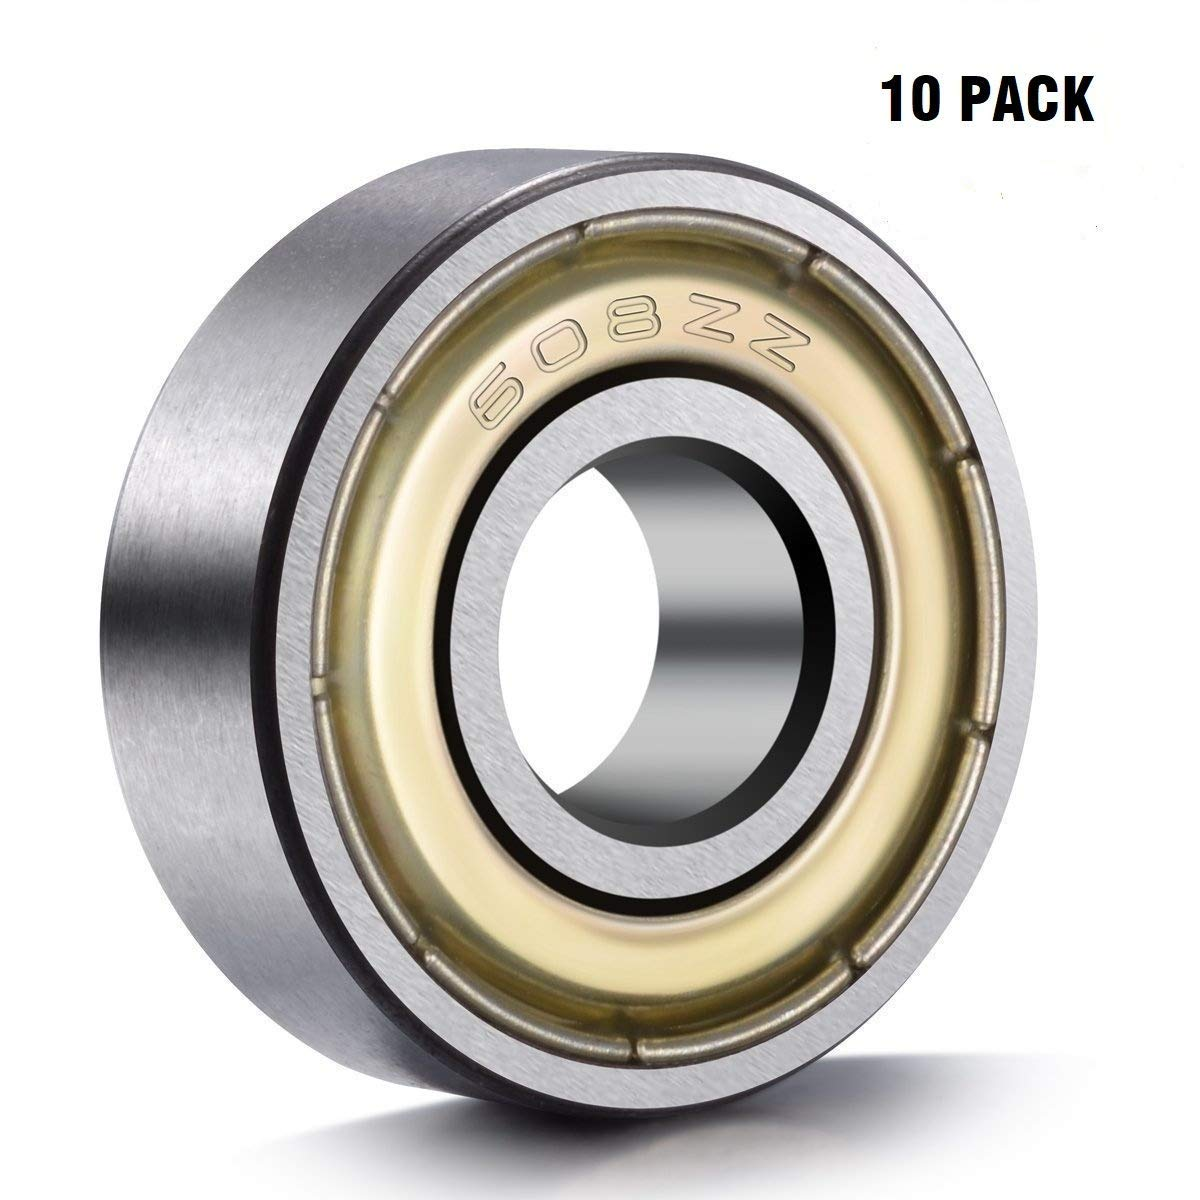 608 ZZ Ball Bearings(10PCS), 608ZZ Metal Double Shielded Miniature Deep Groove Skateboard Ball Bearings (8mm x 22mm x 7mm)